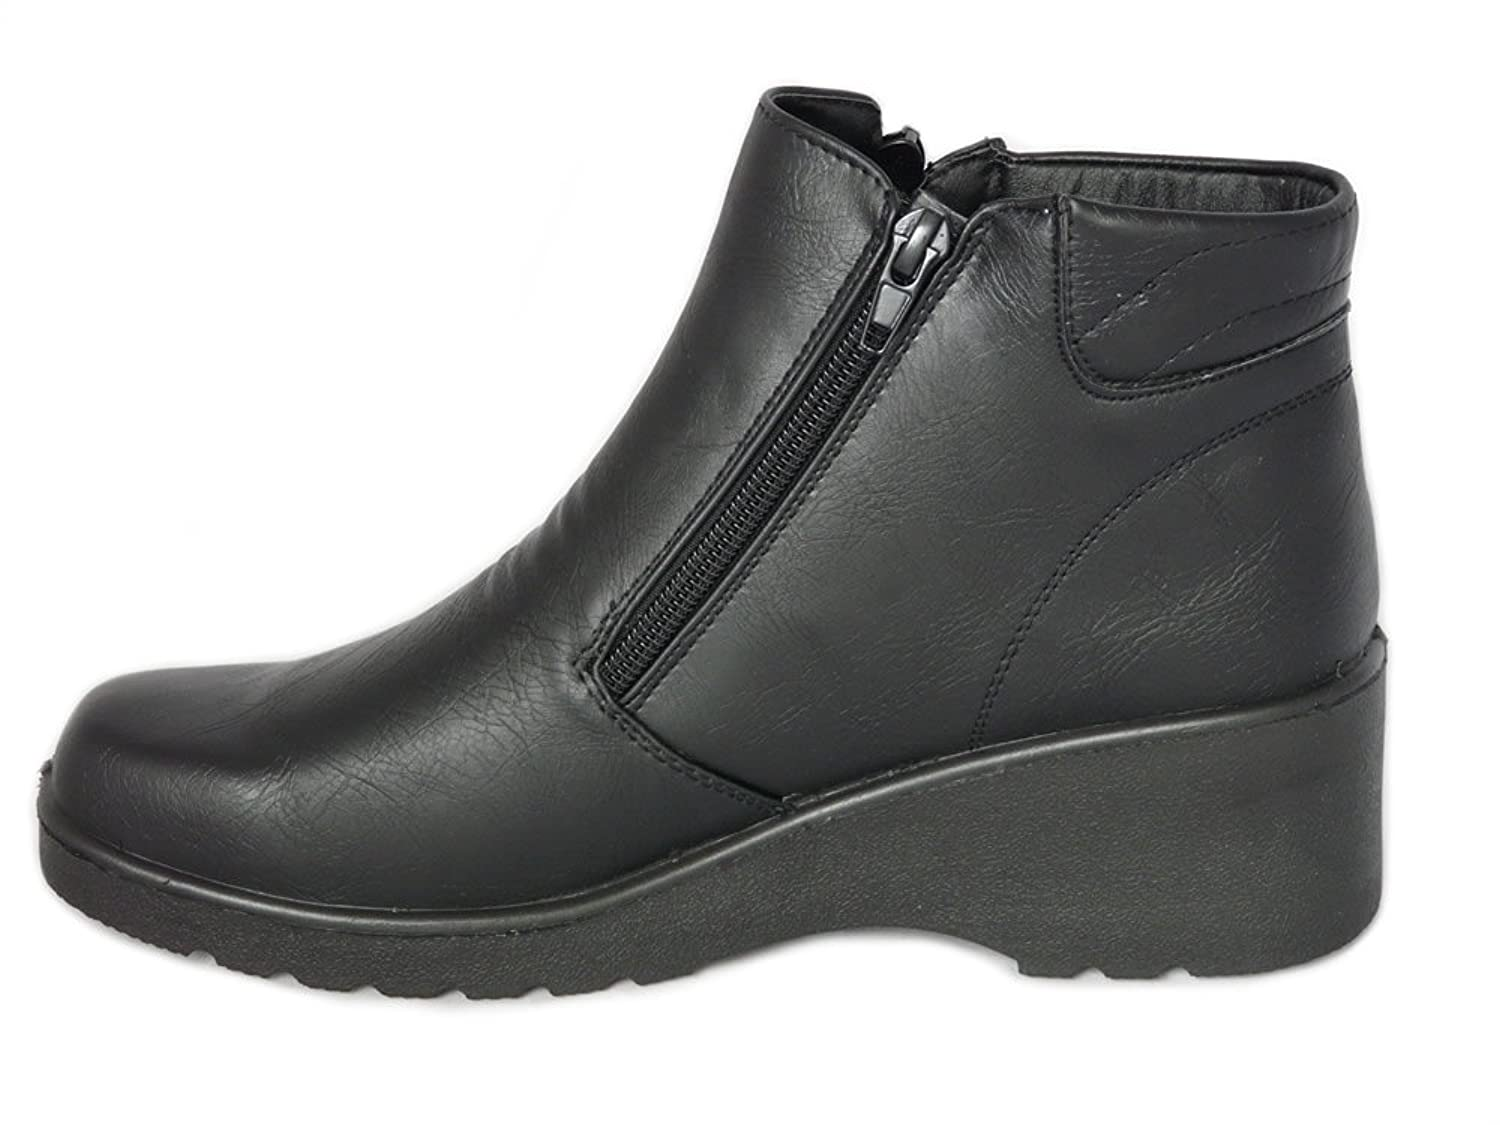 2a6b4222fe35 Cushion Walk Women s Black Low Wedge Ankle Boots with Double Zip Fastening    Non-Slip Sole - Sizes 3-8 (4 UK 37 EU)  Amazon.co.uk  Shoes   Bags